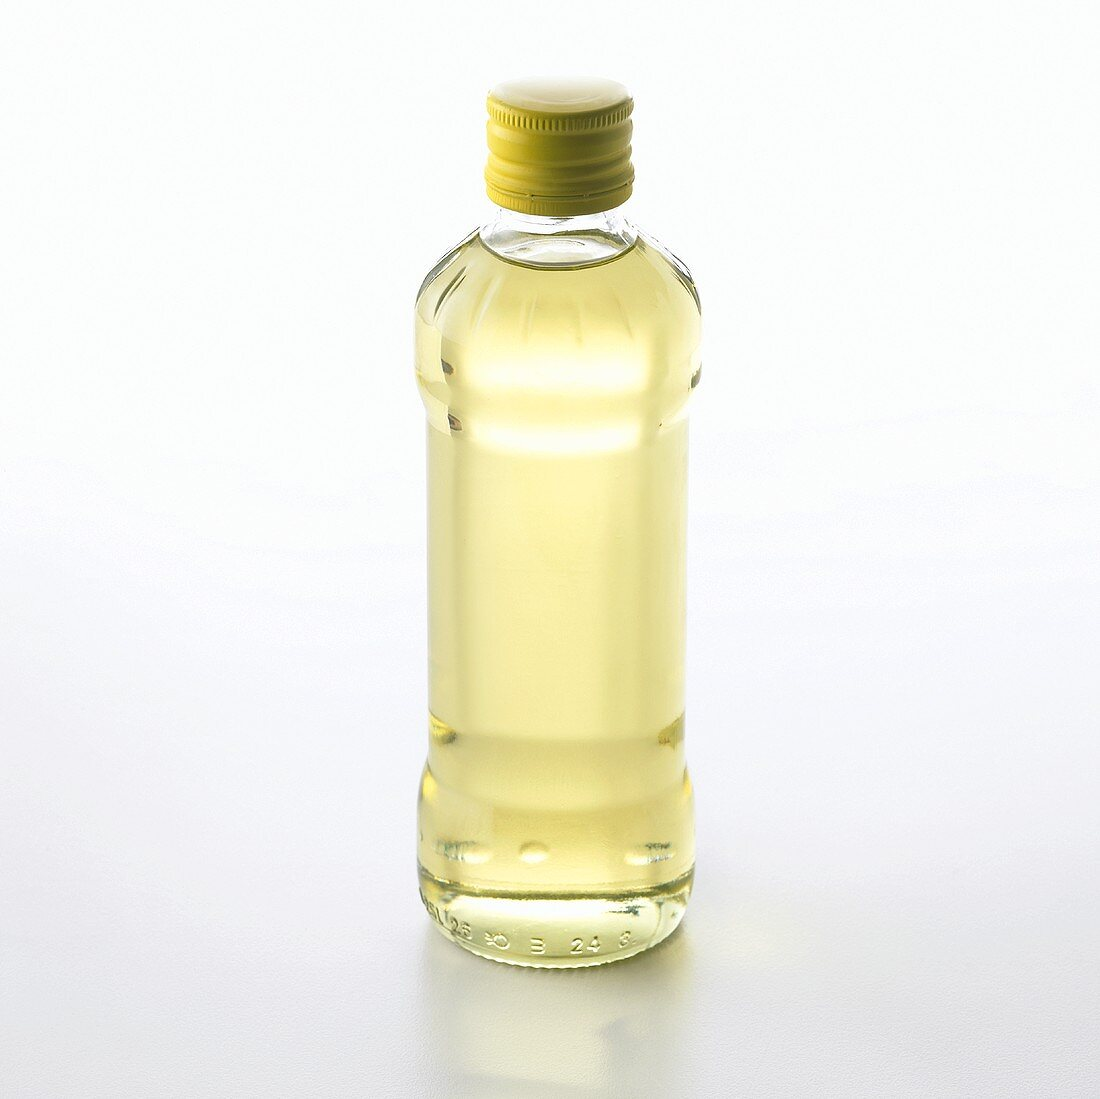 A bottle of vegetable cooking oil